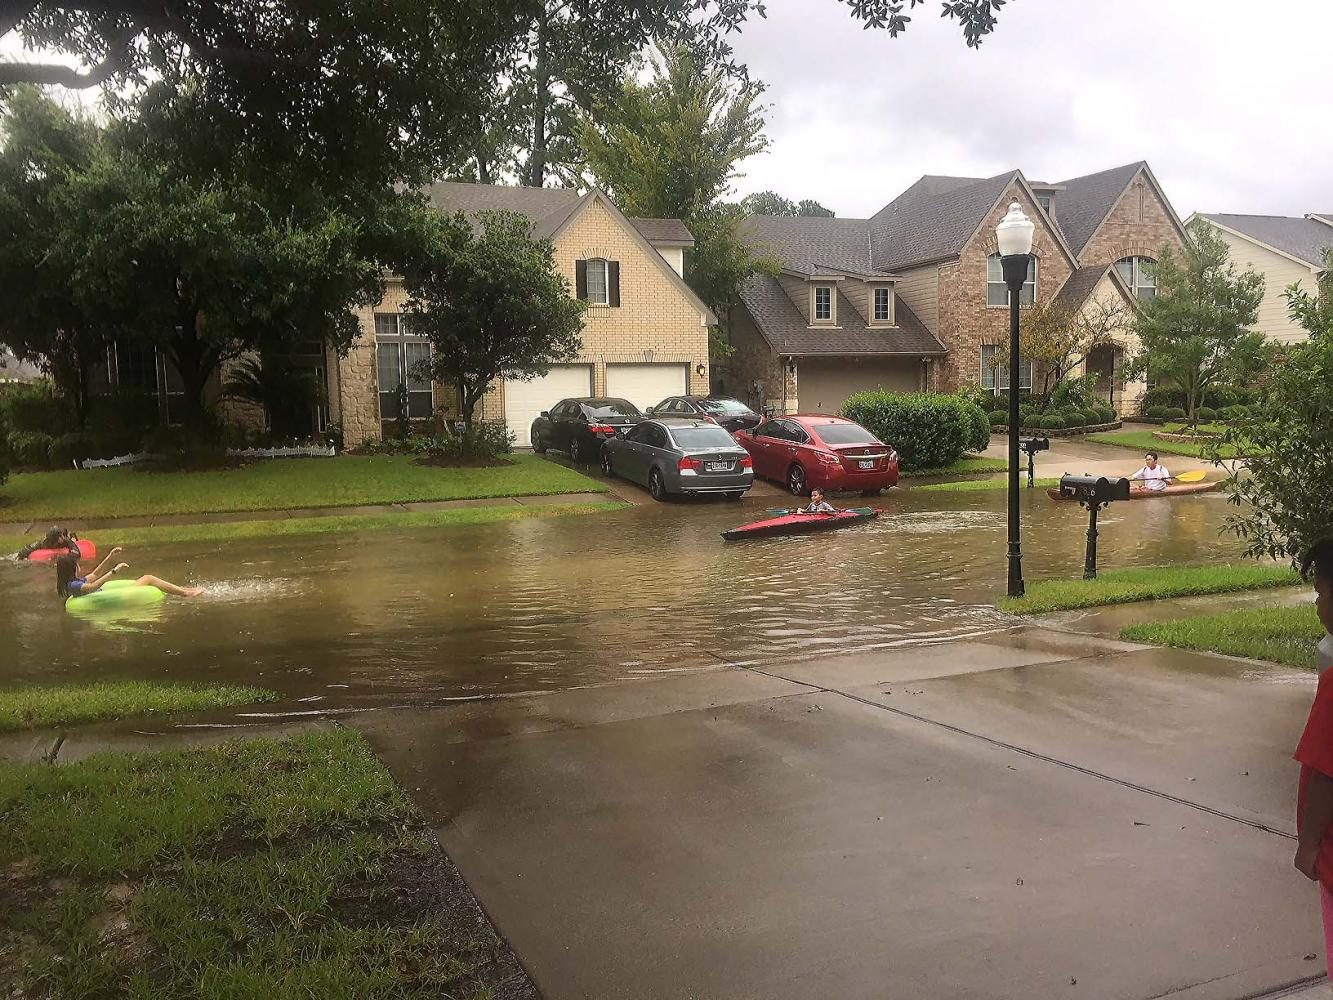 People in inner tubes and canoes float down a flooded street.